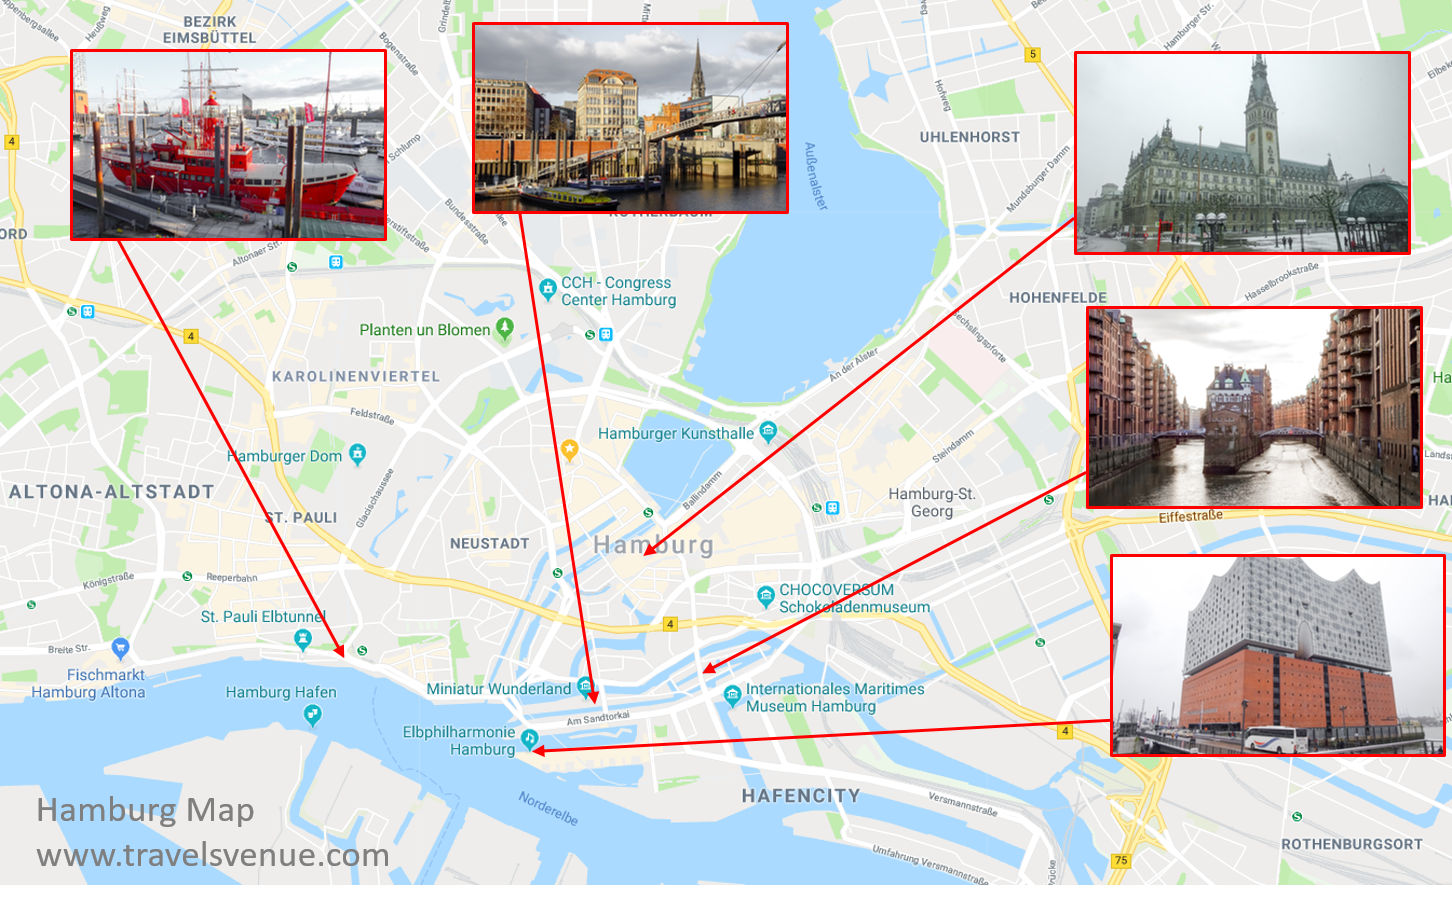 Germany Russia attacks Hamburg Svens Travel Venues